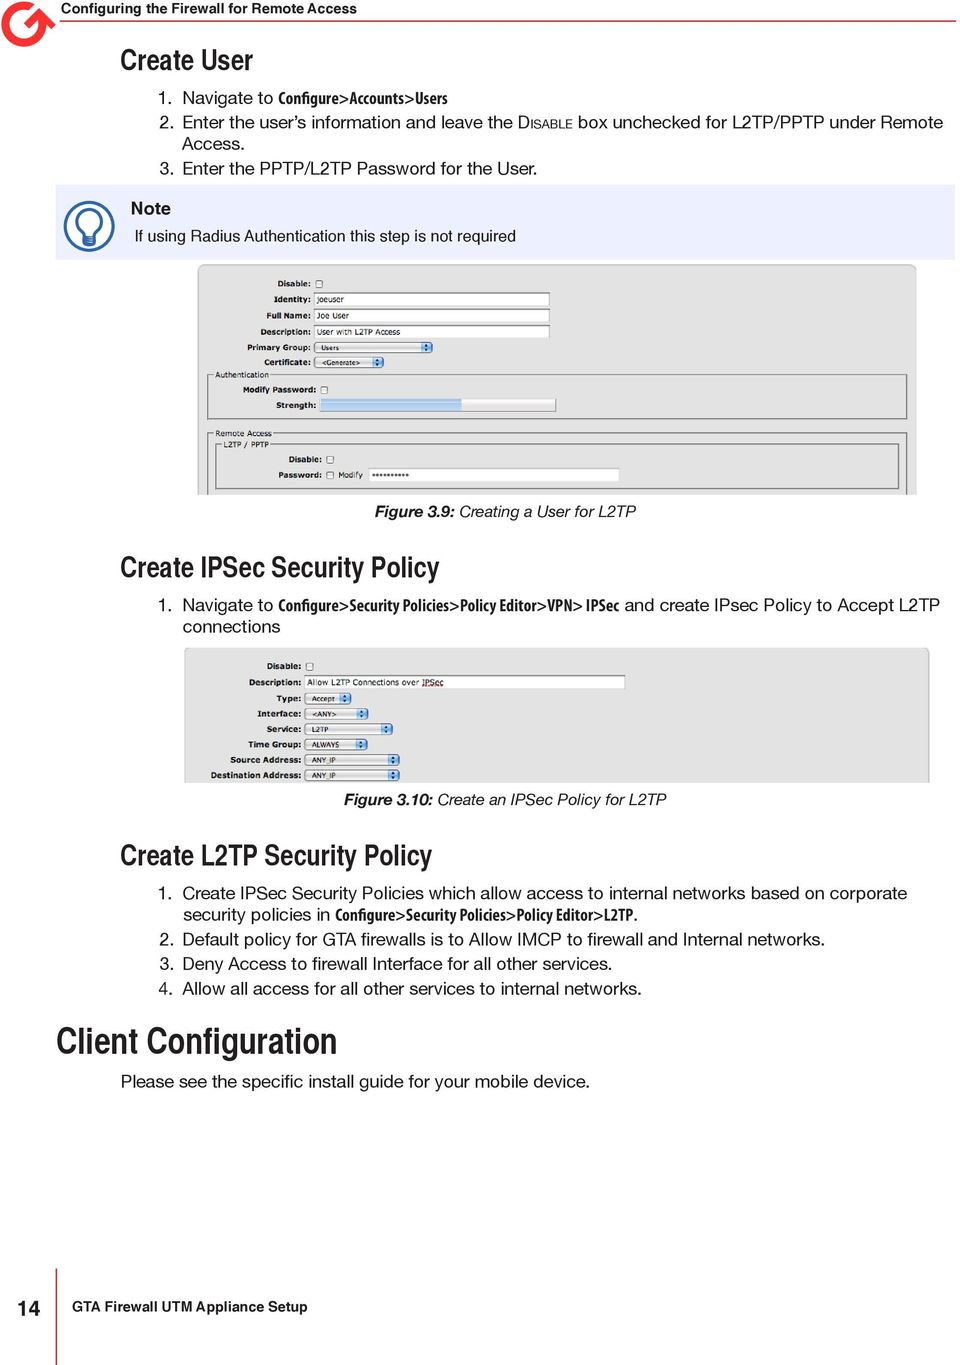 Navigate to Configure>Security Policies>Policy Editor>VPN> IPSec and create IPsec Policy to Accept L2TP connections Create L2TP Security Policy Figure 3.10: Create an IPSec Policy for L2TP 1.